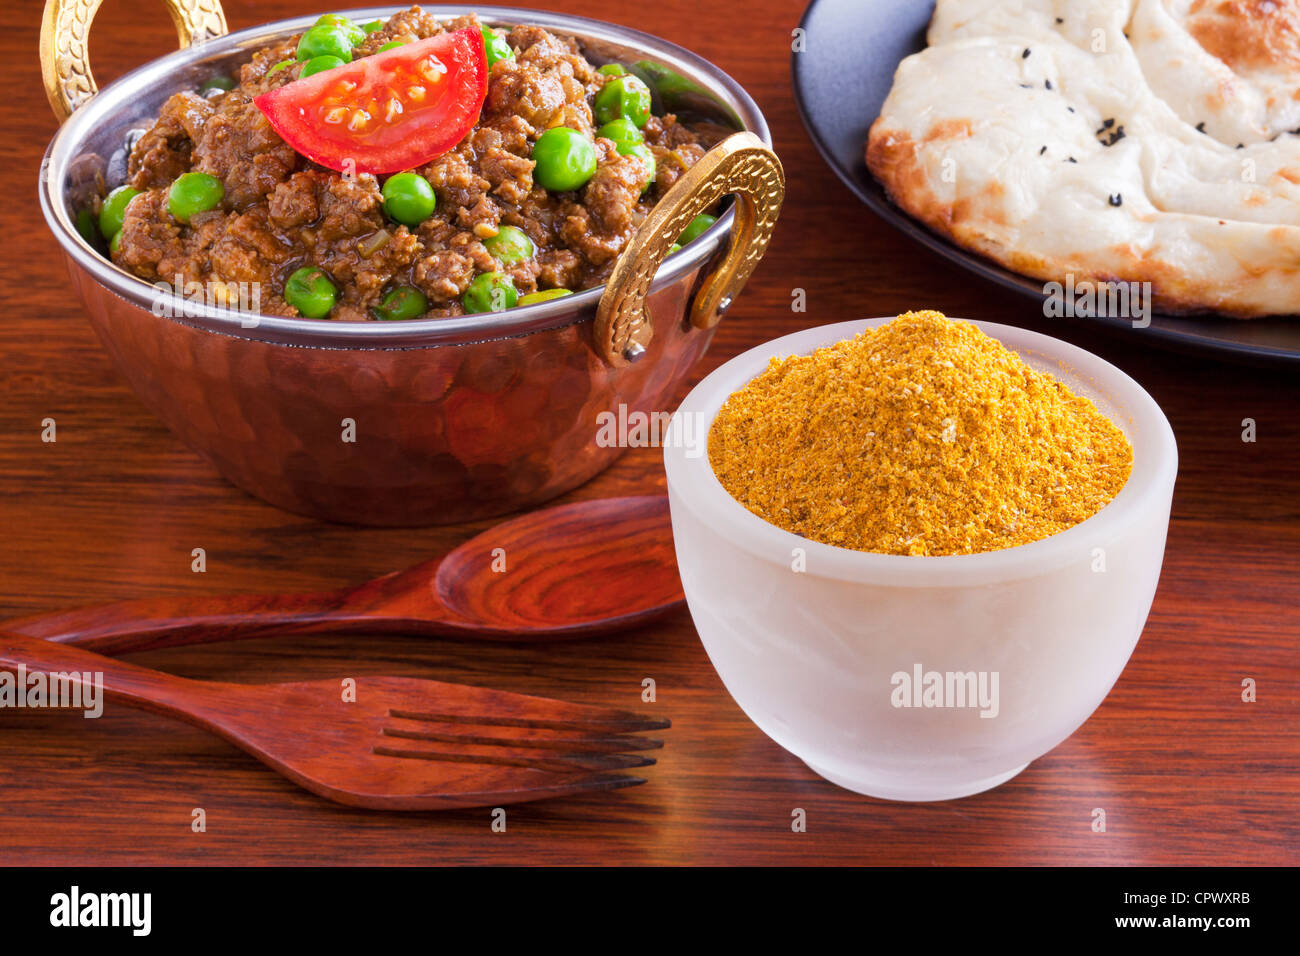 Curry powder with a beef mince curry, keema matar with peas, and naan bread. - Stock Image